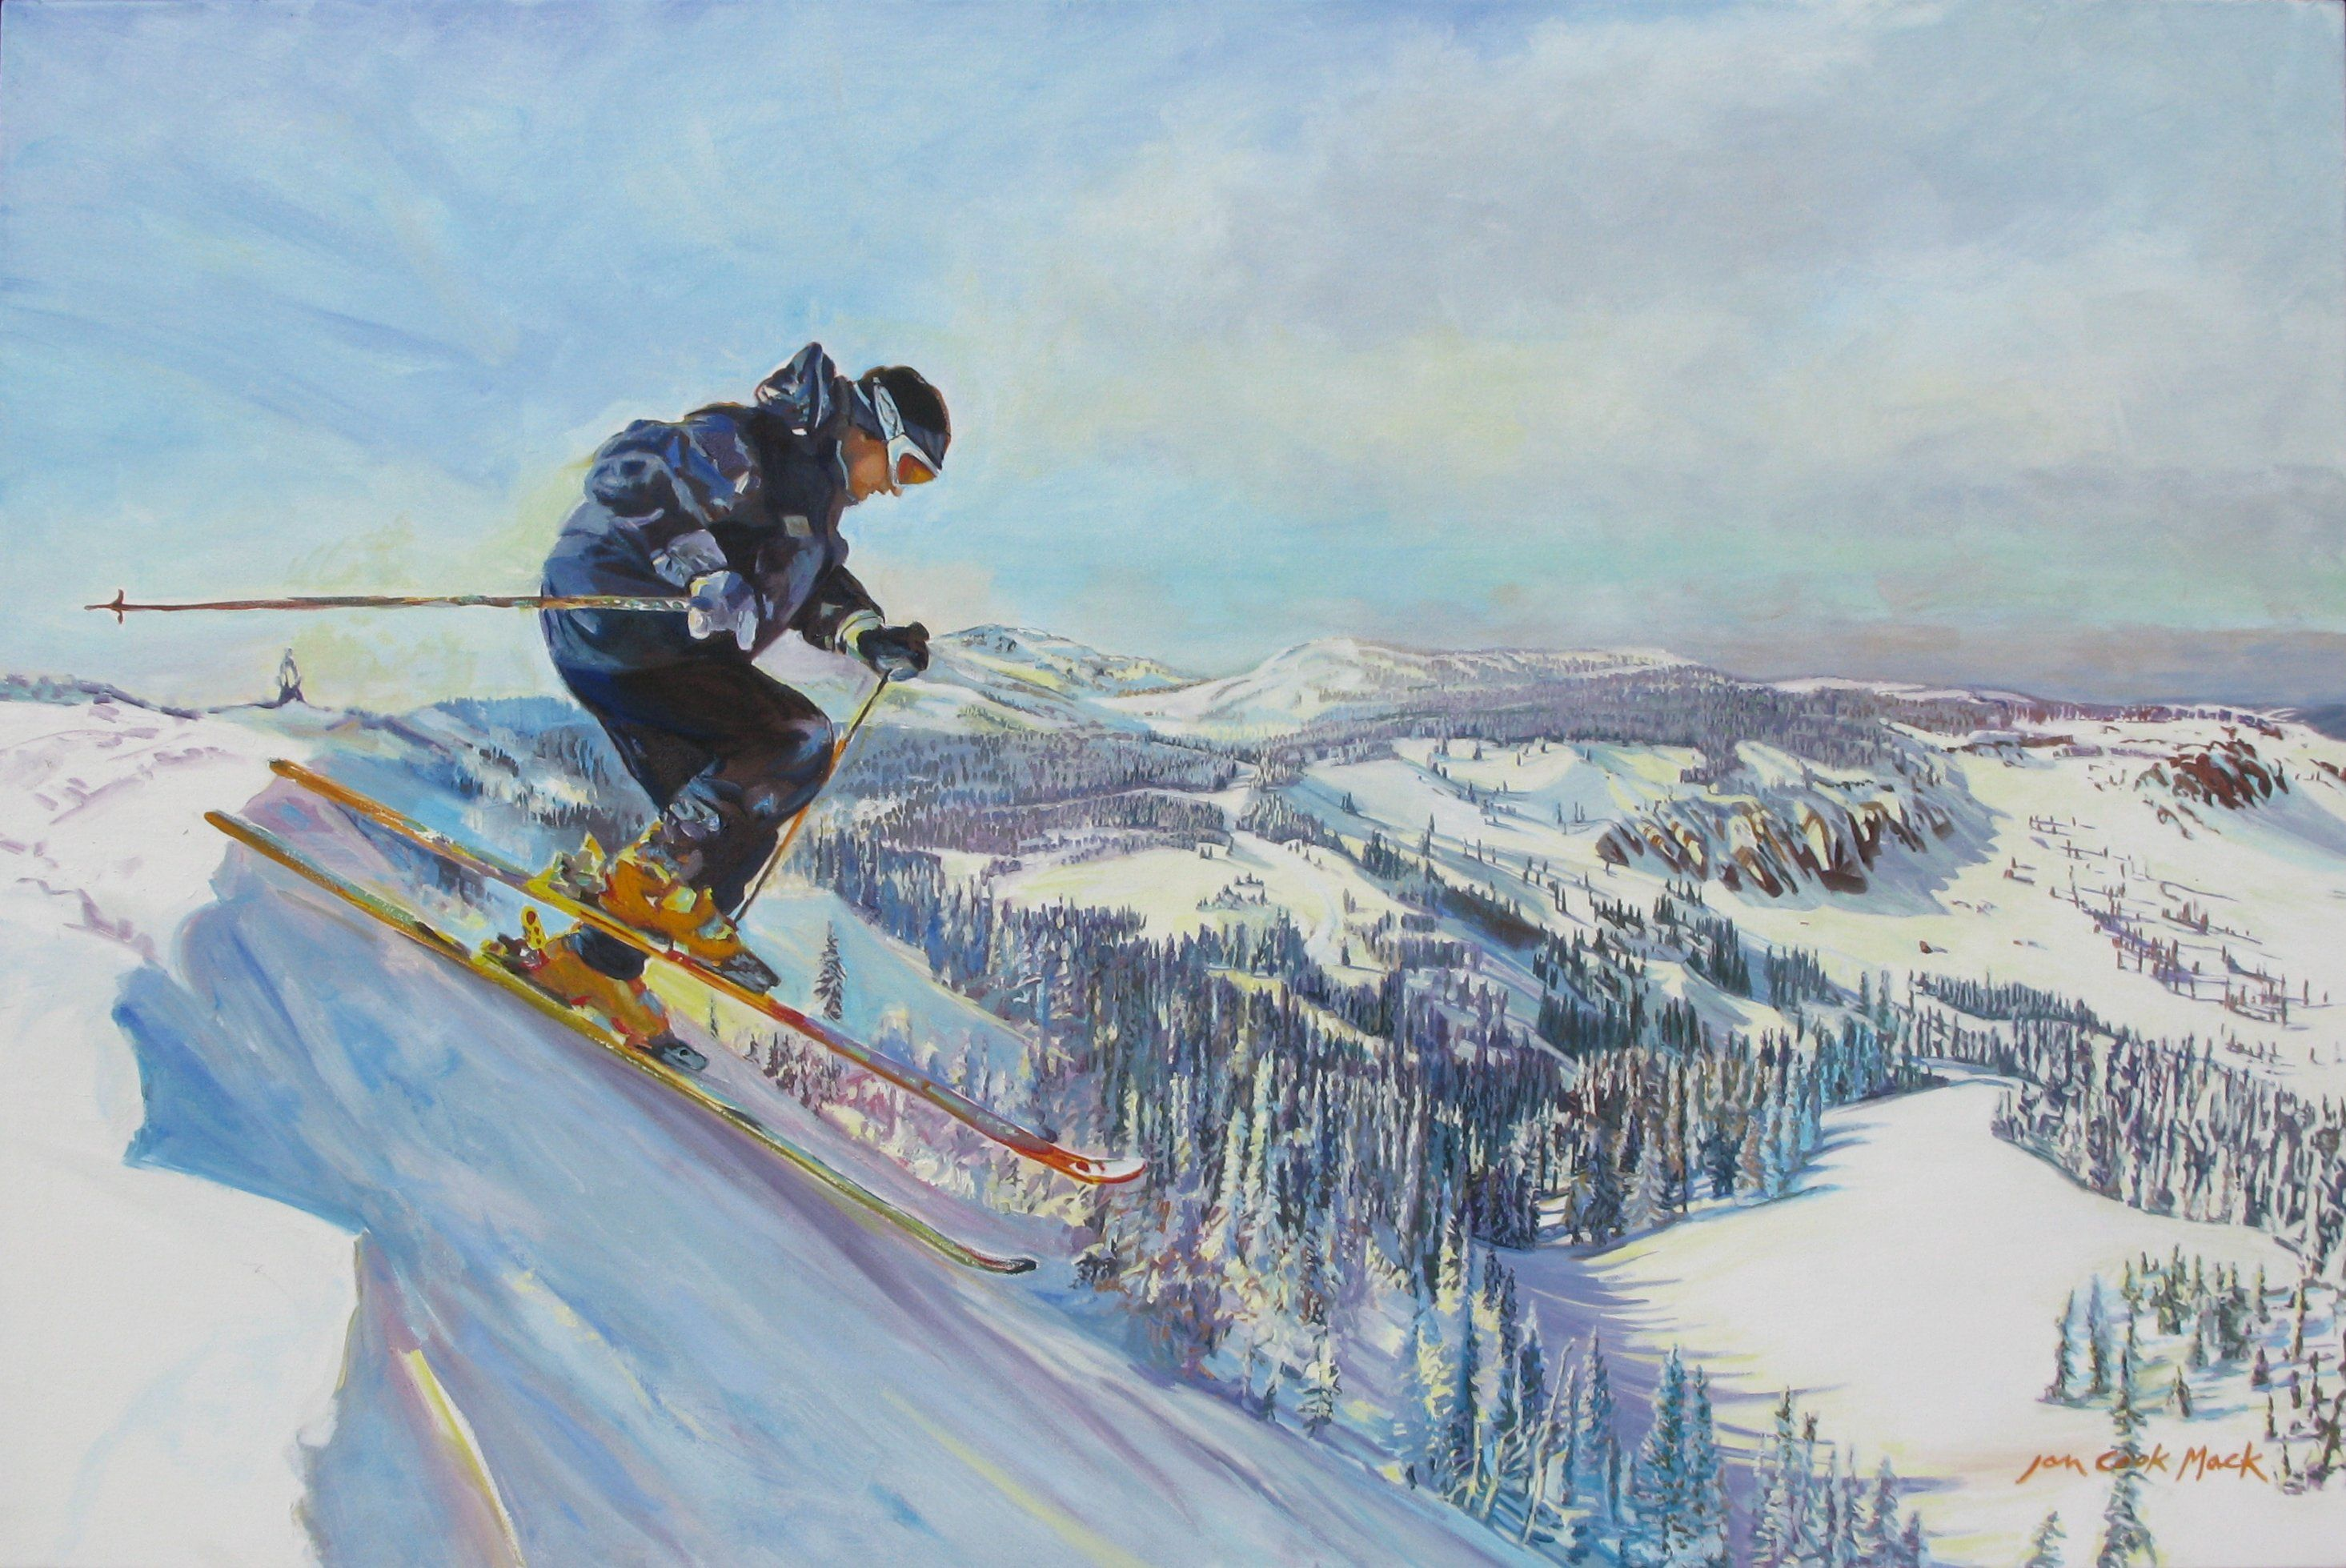 Brad Whiting Airing It Out on Mission Ridge by Jan Cook Mack